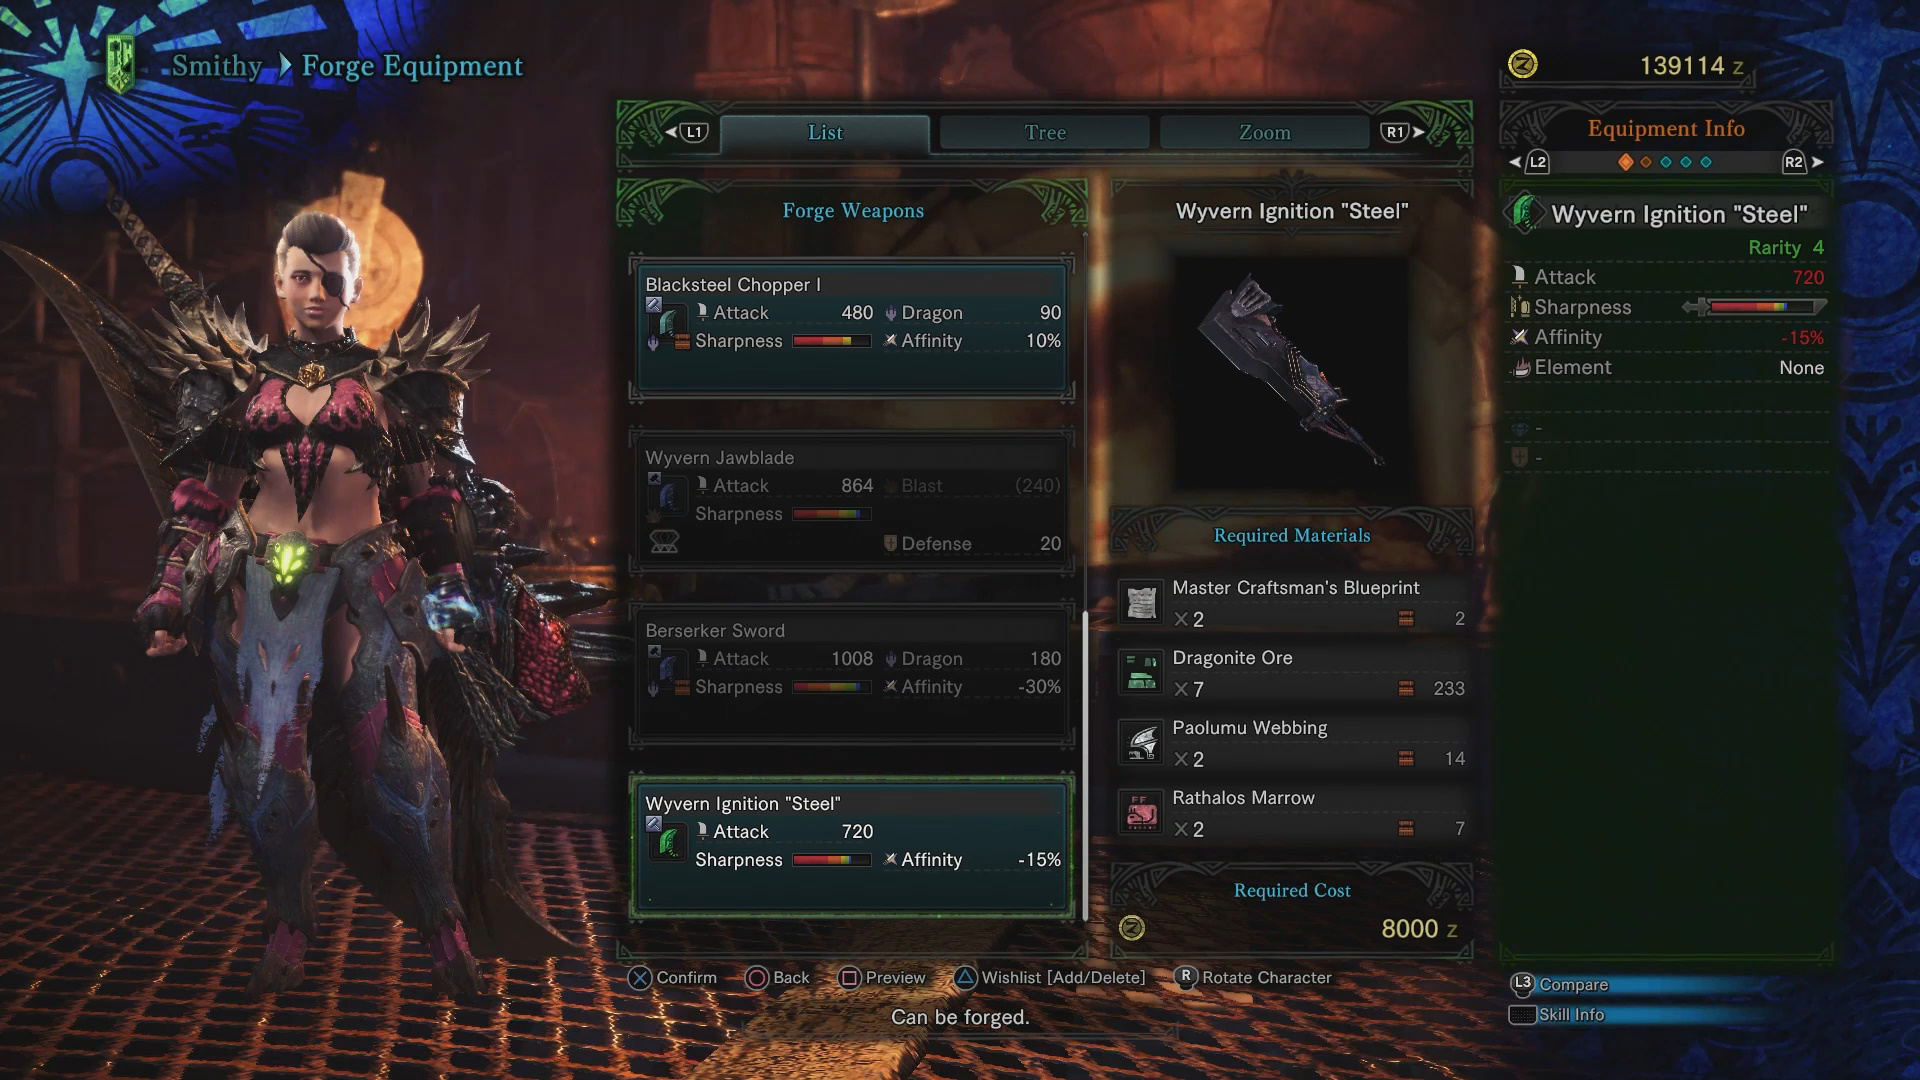 How to Get the Wyvern Ignition Greatsword - Monster Hunter World